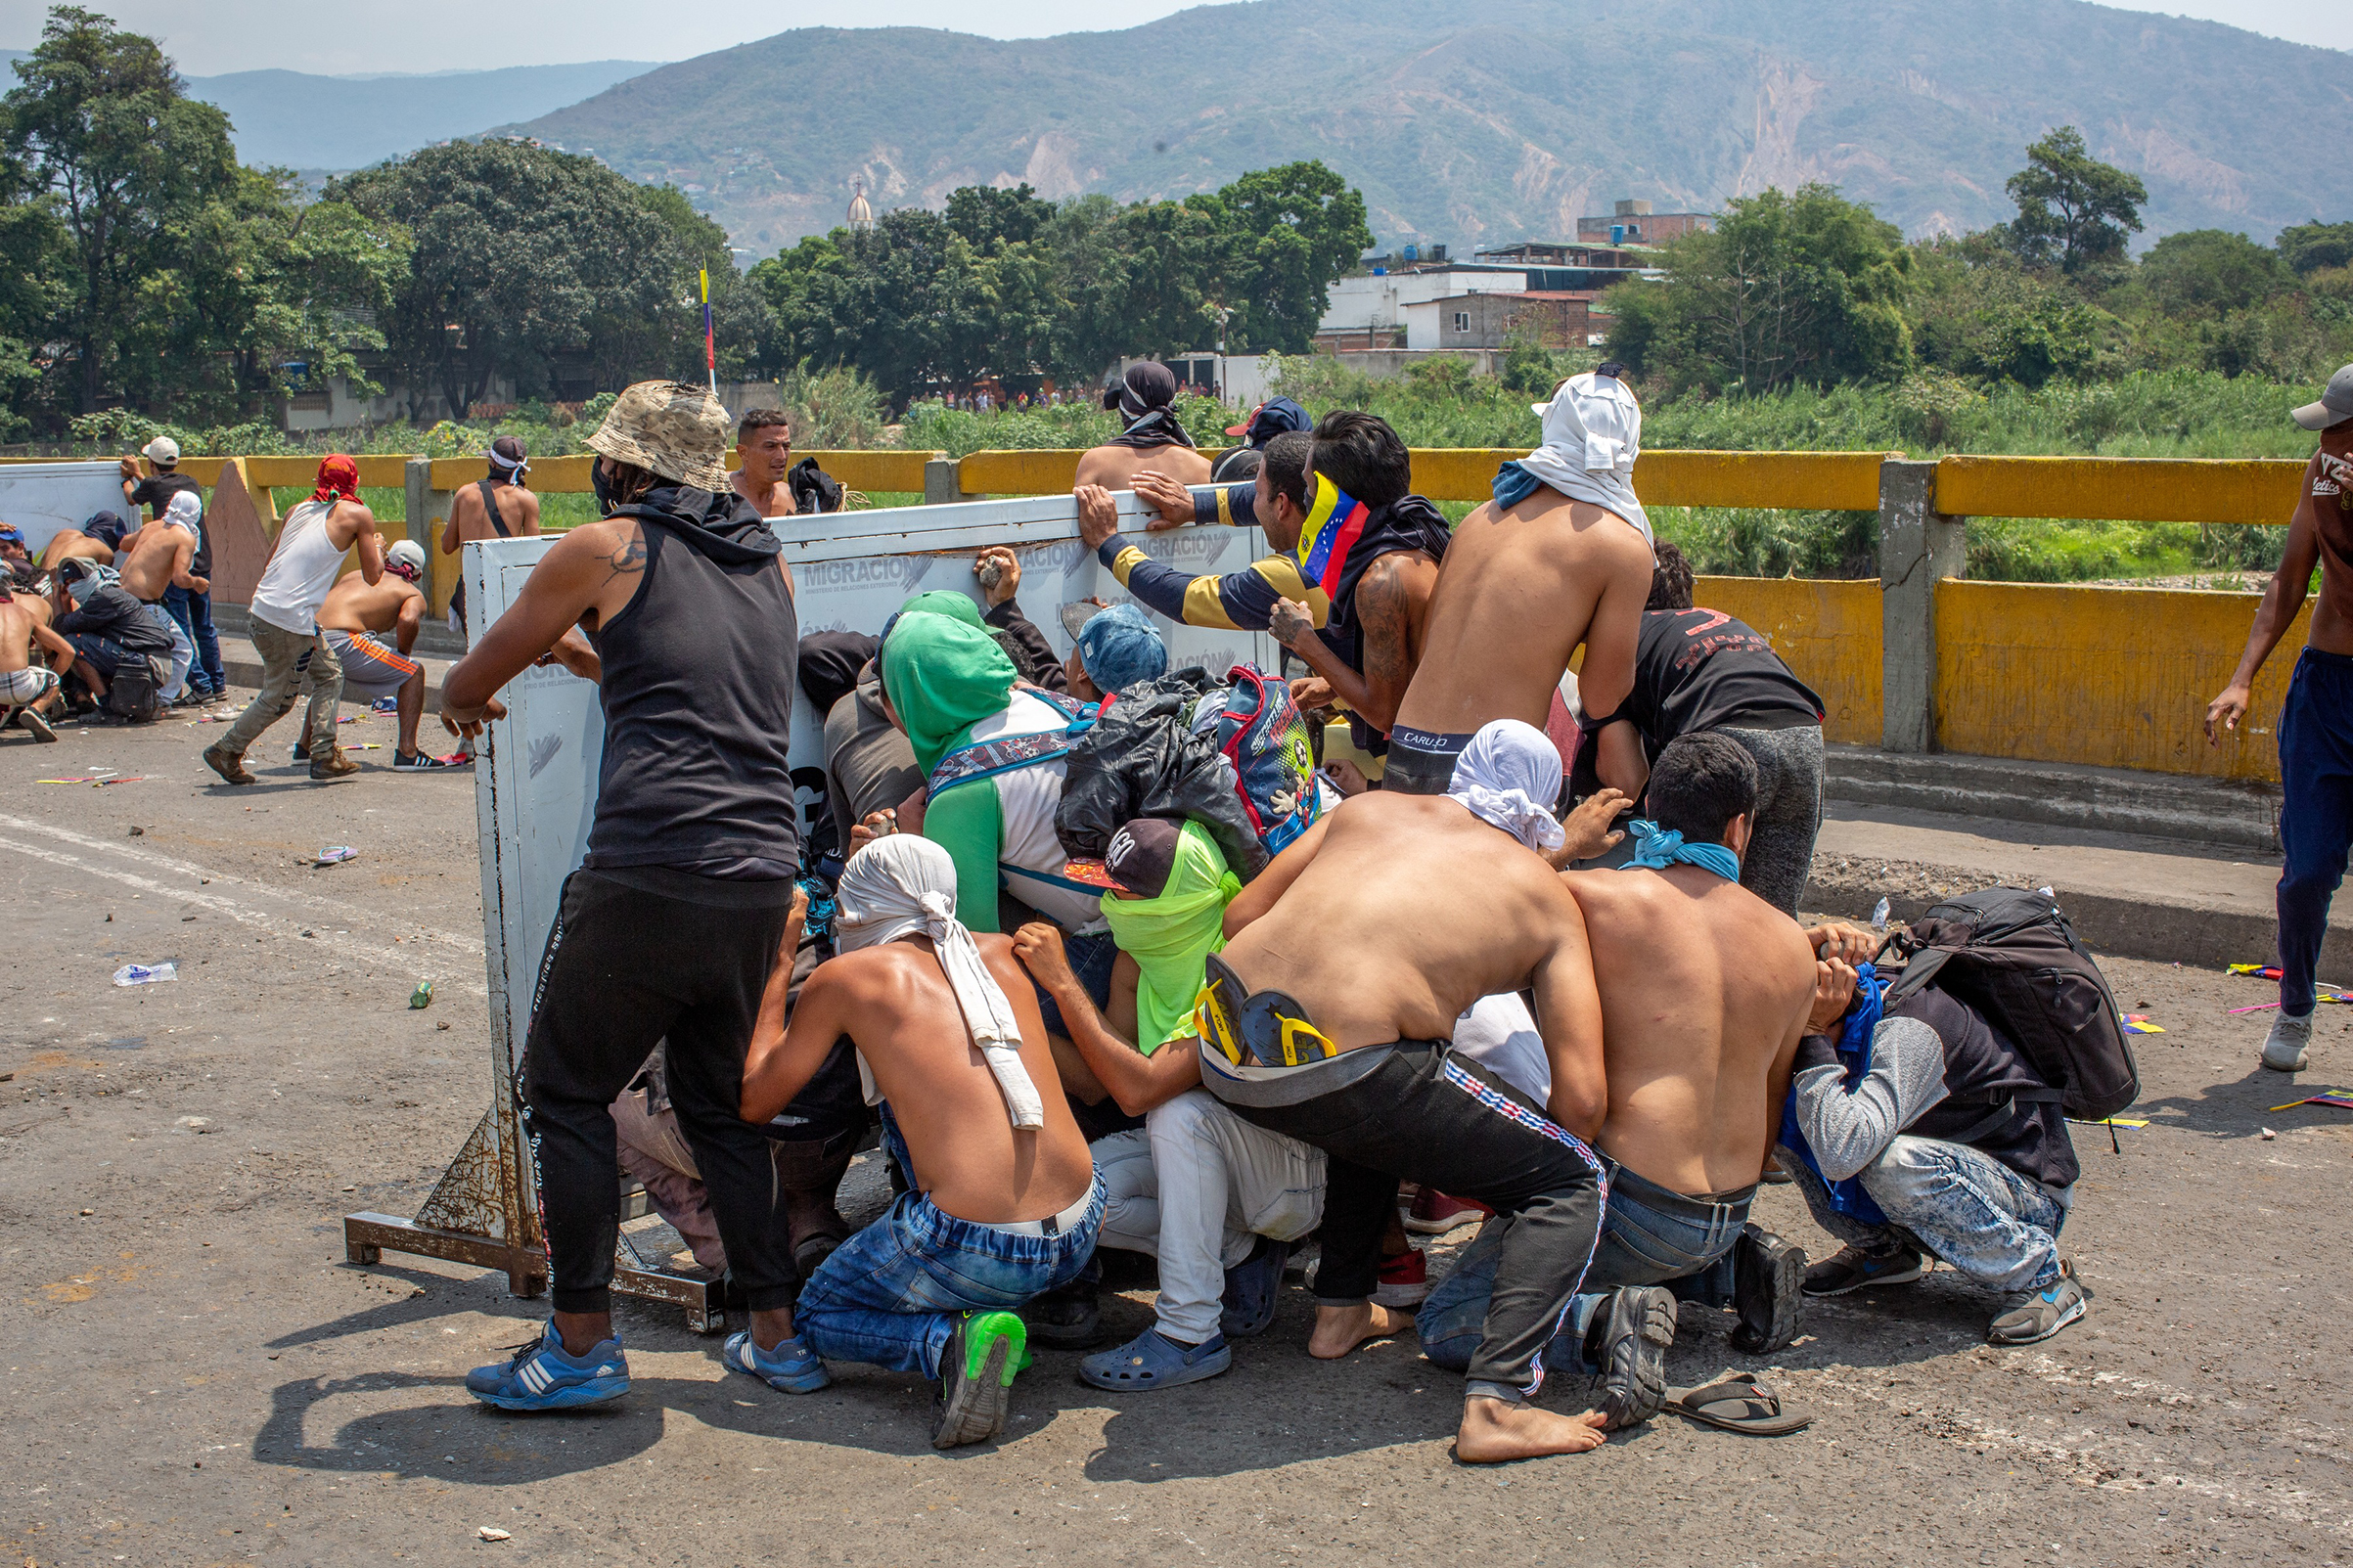 A group of demonstrators take cover during a clash with Venezuelan national police officers on the Simón Bolívar International Bridge in Cúcuta, Colombia, on Feb. 23. Clashes along the border stranded aid caravans. March 11 issue.